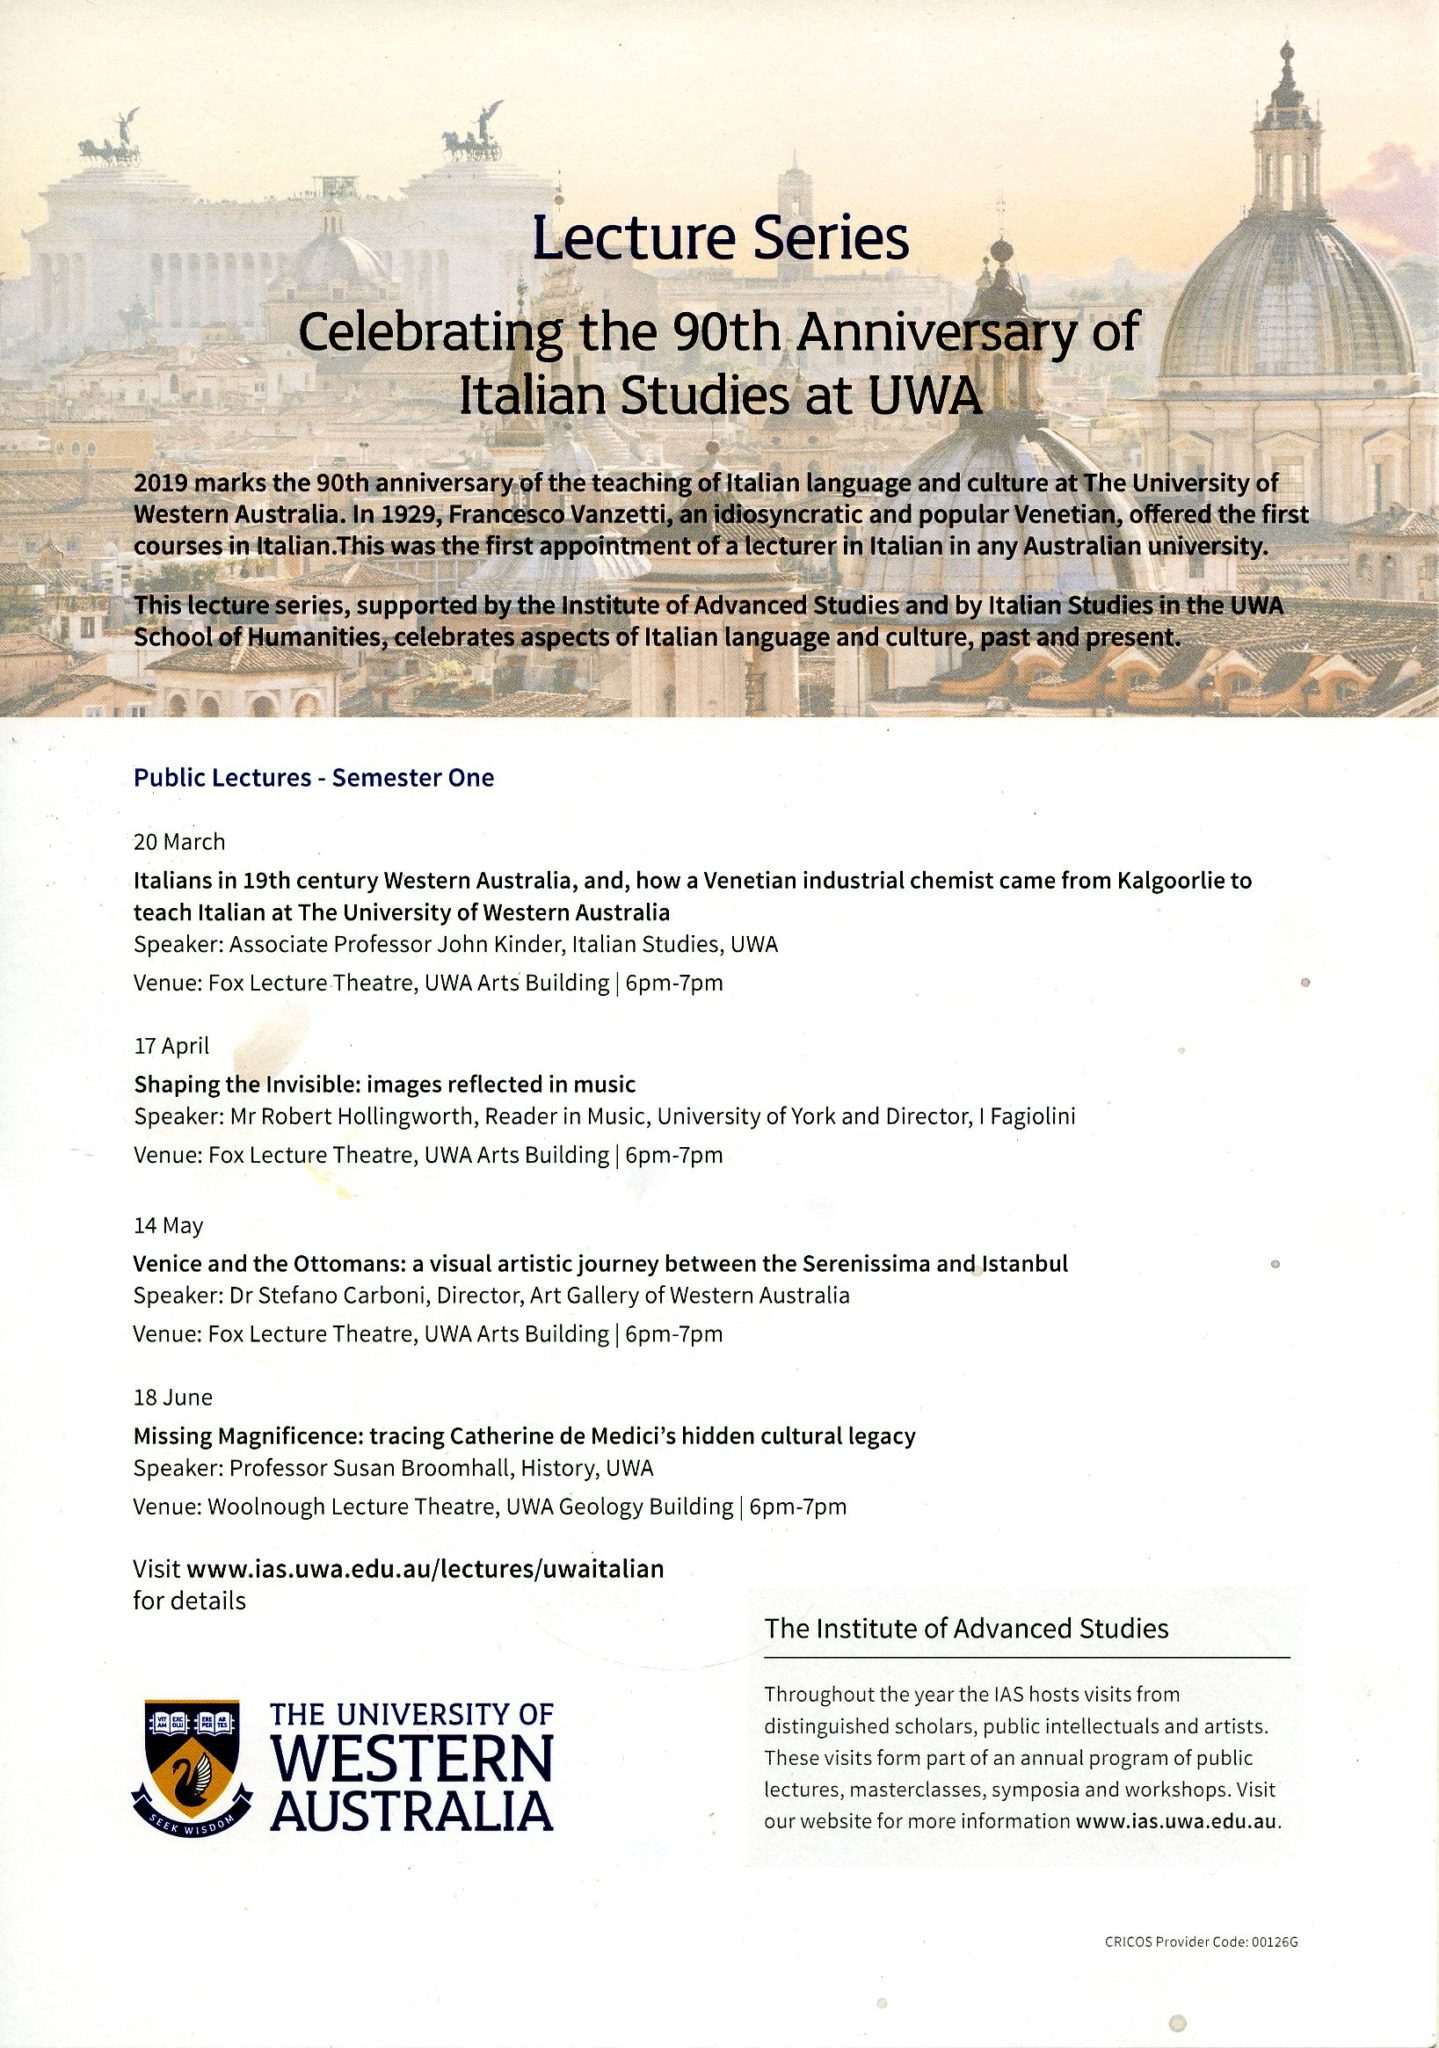 Celebrating the 90th Anniversary of Italian Studies at UWA